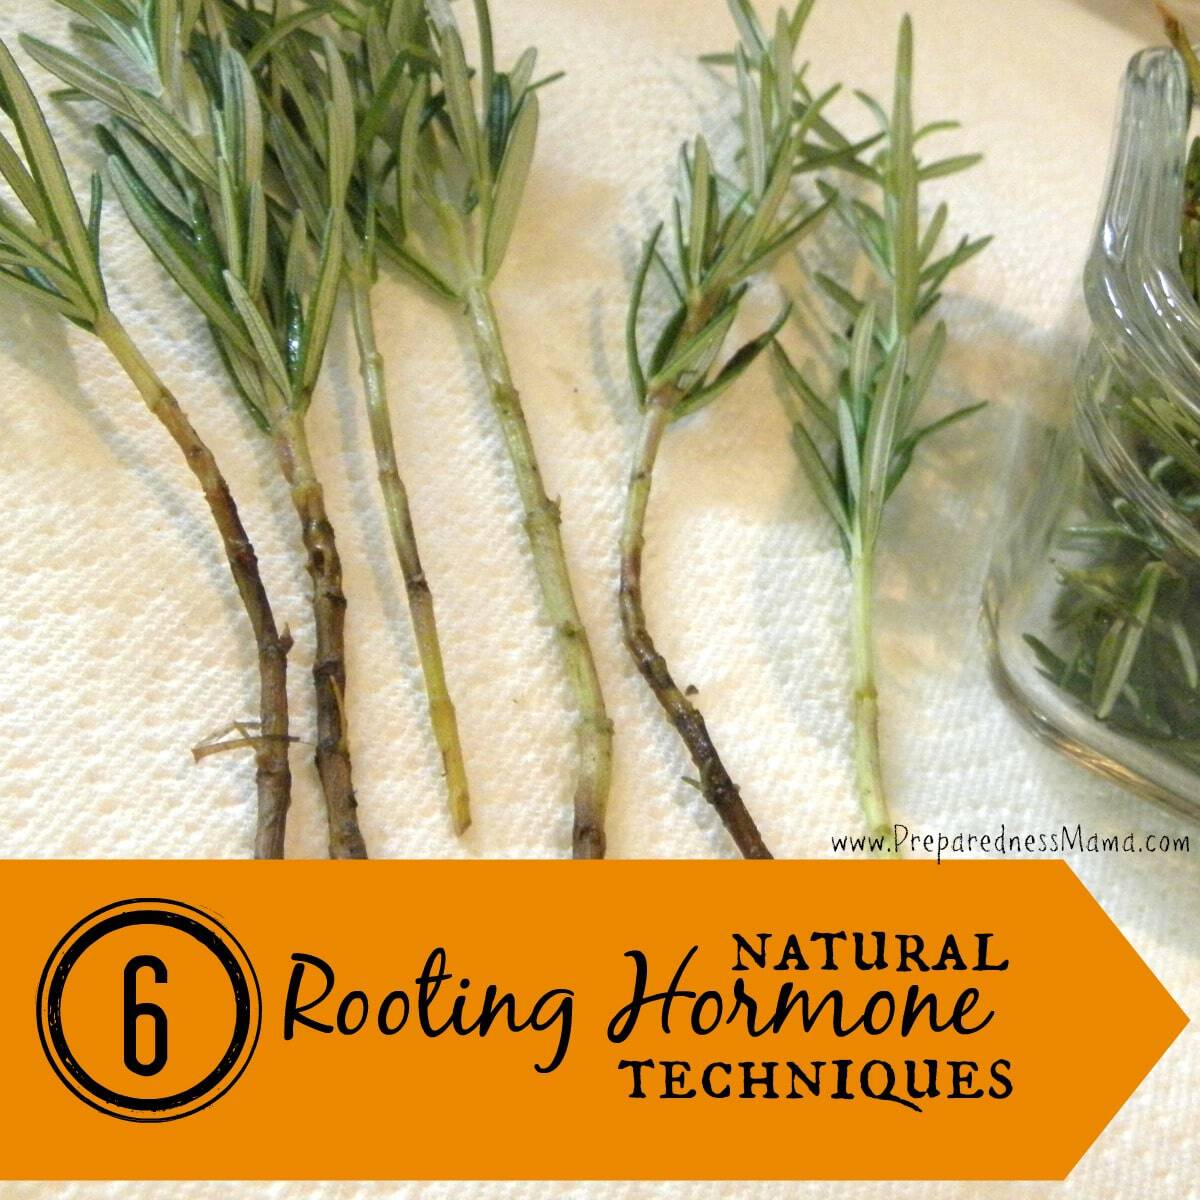 6 Ways to Make Natural Rooting Hormone | PreparednessMama